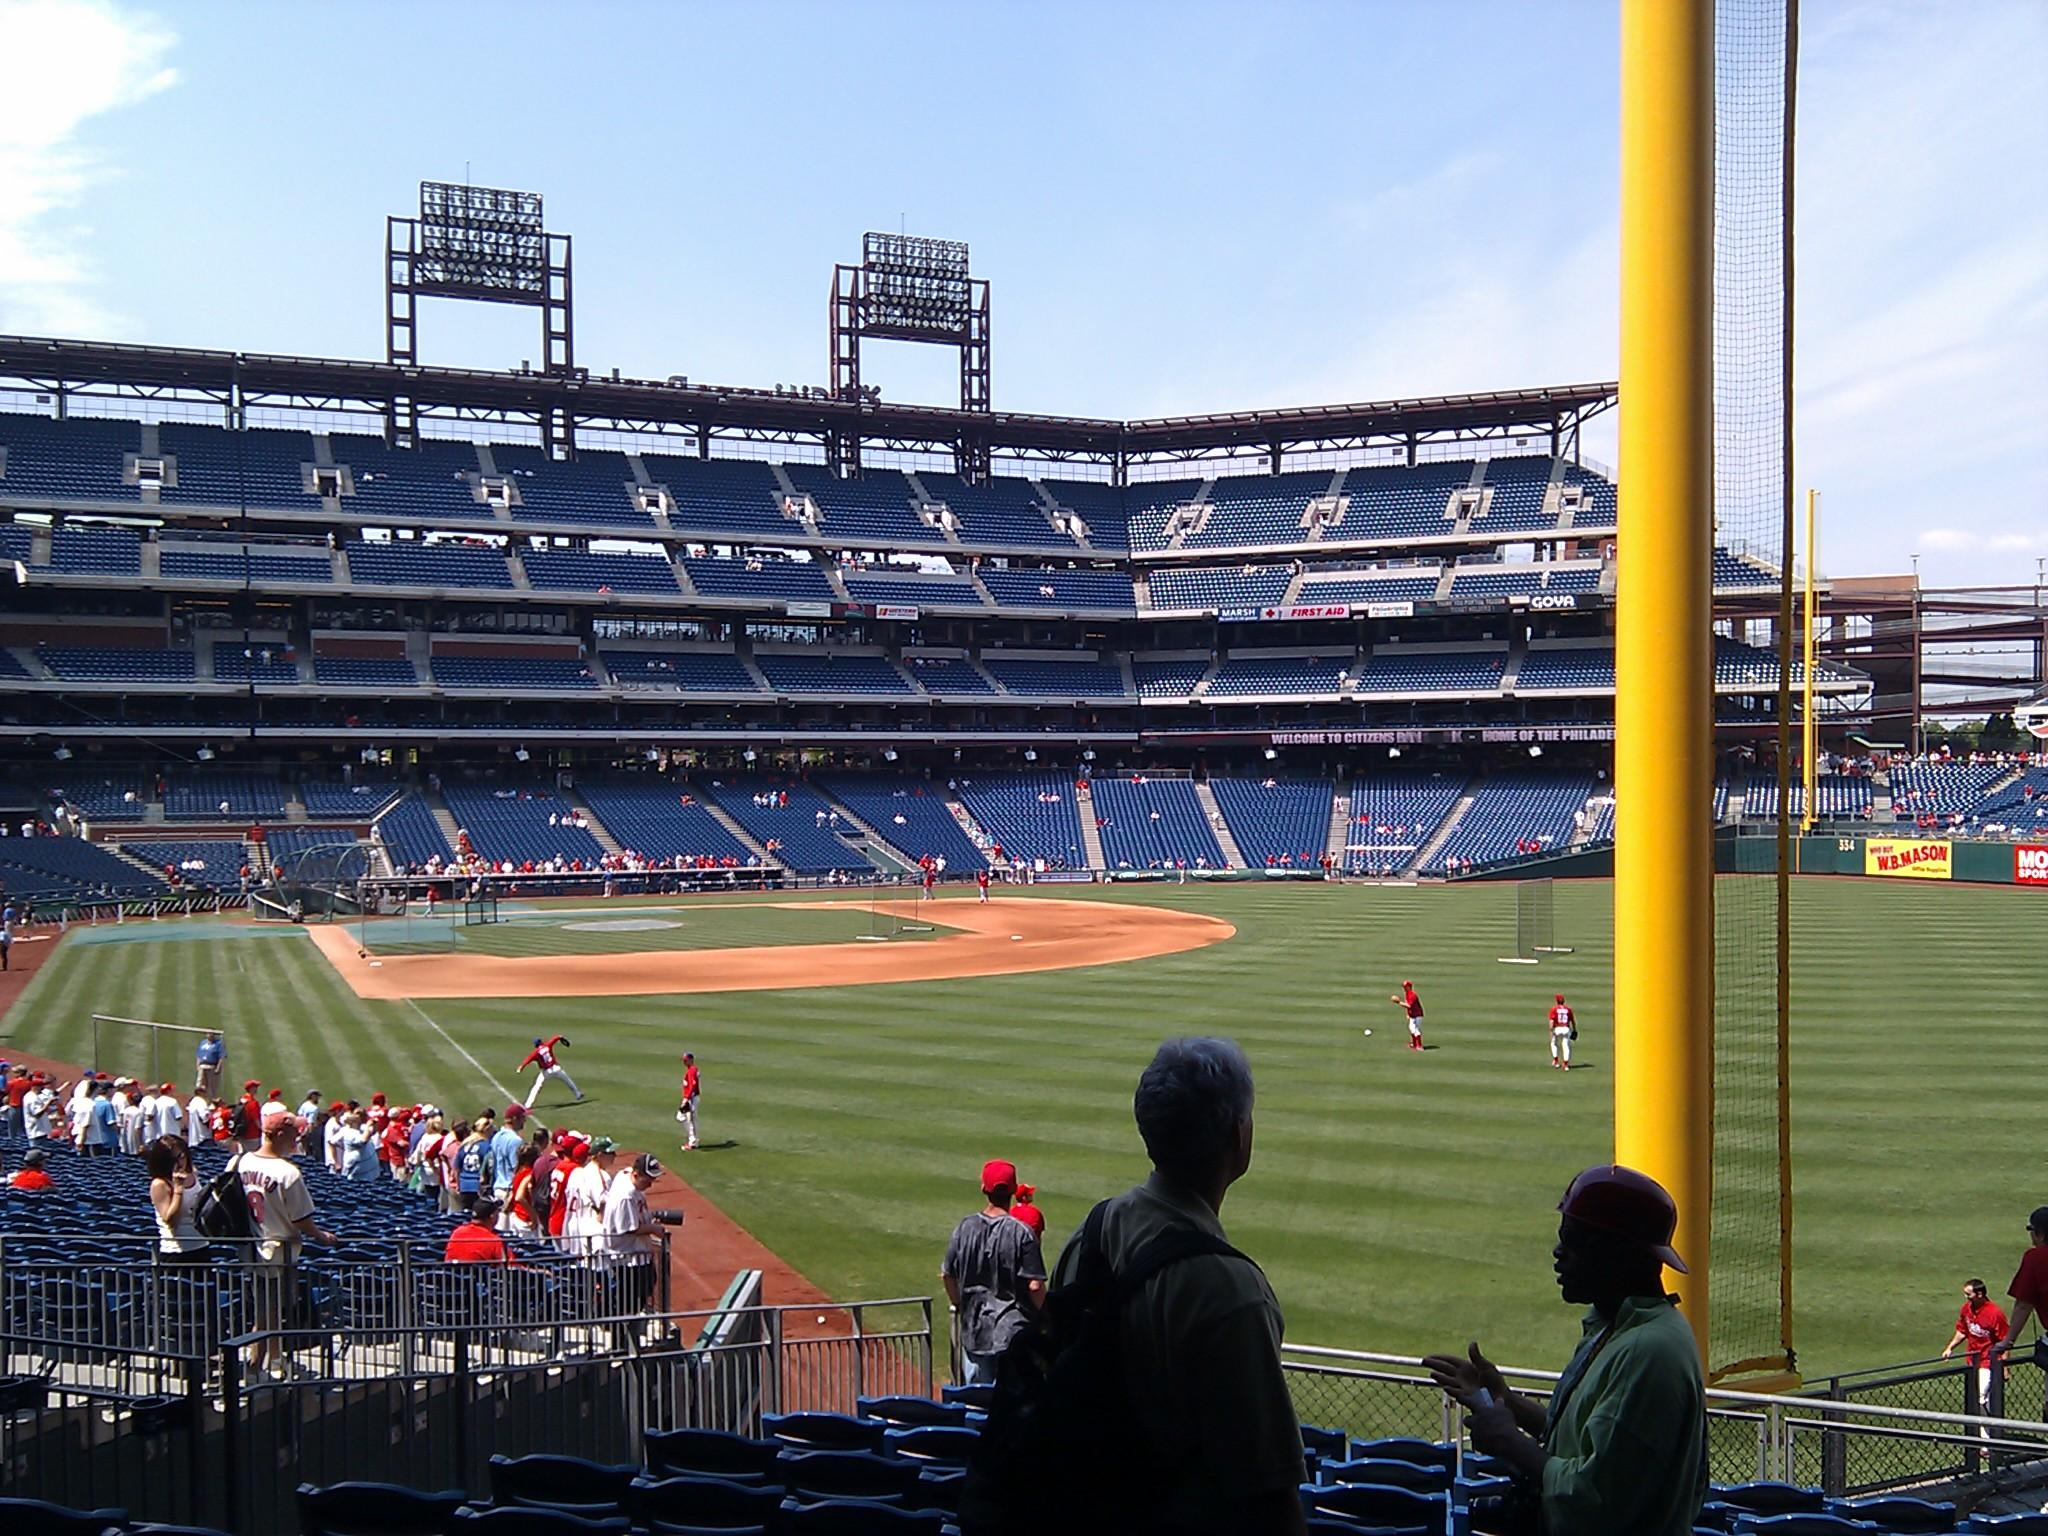 Citizens Bank Park Section 106 Row 14 Seat 5